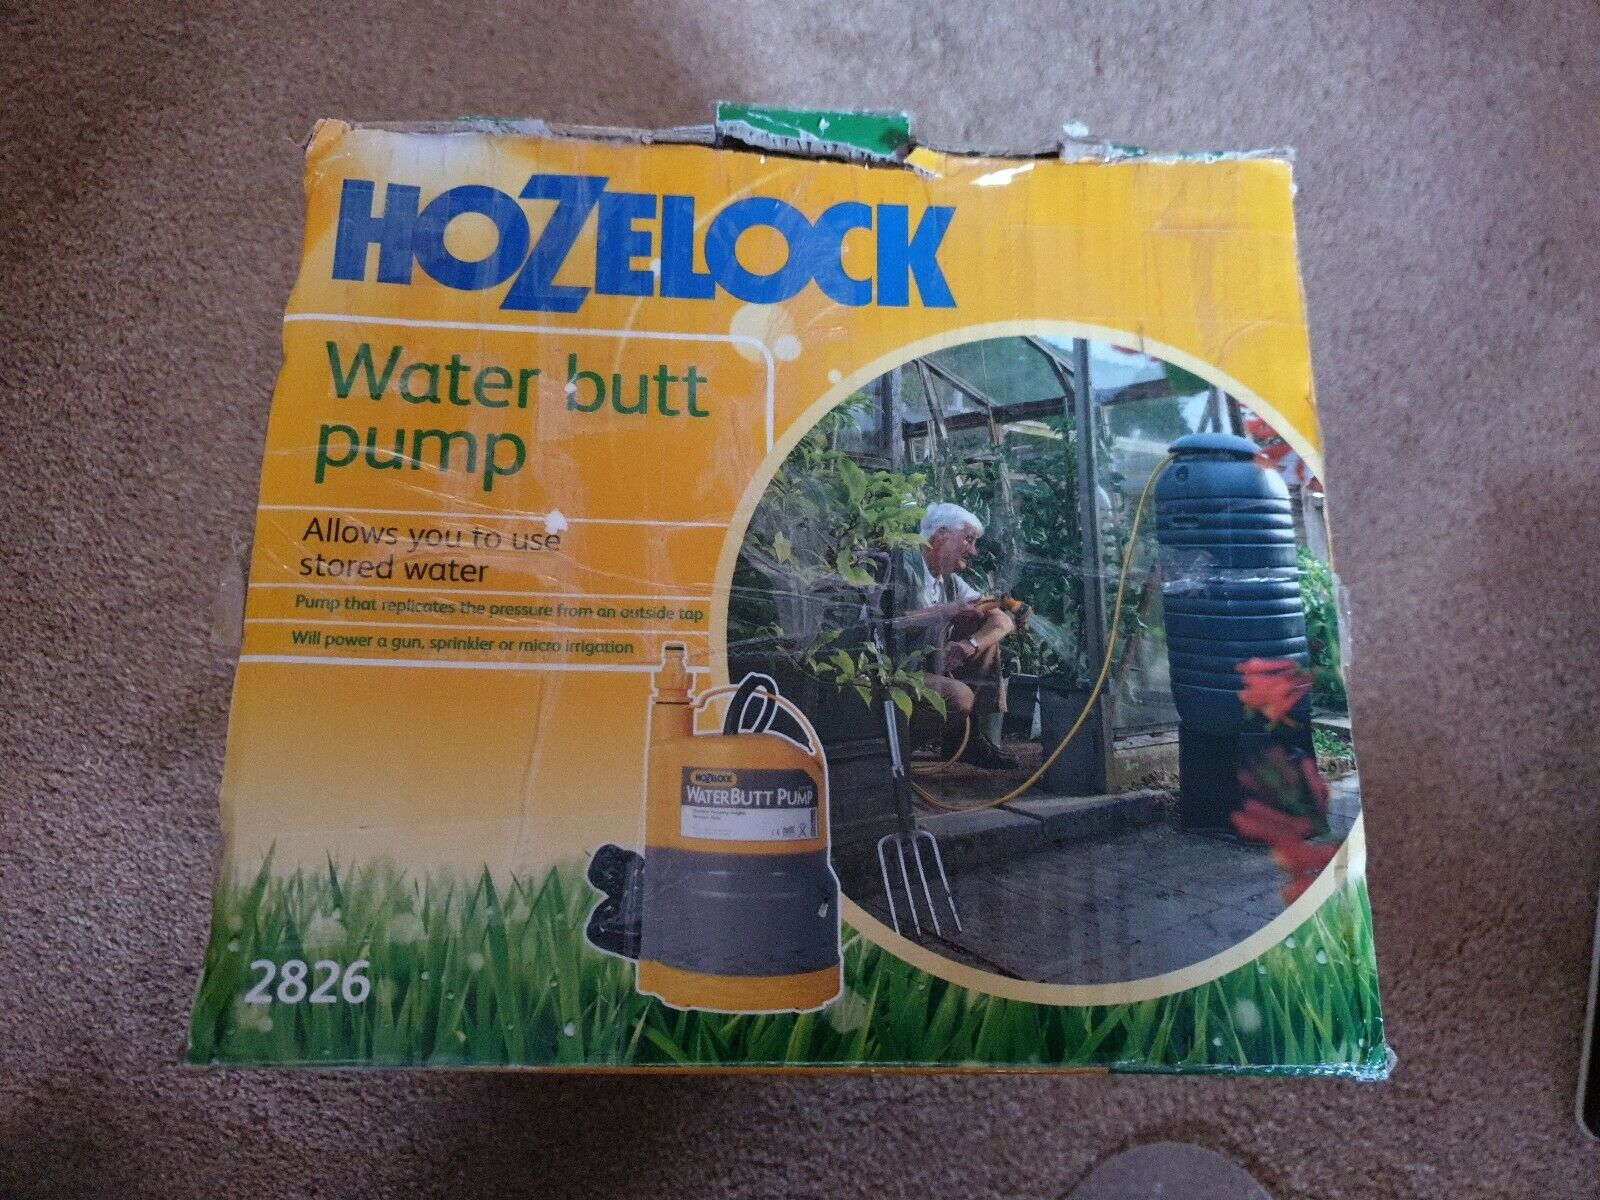 hozelock water butt pump 2826 16Psi new in box never used since purchase